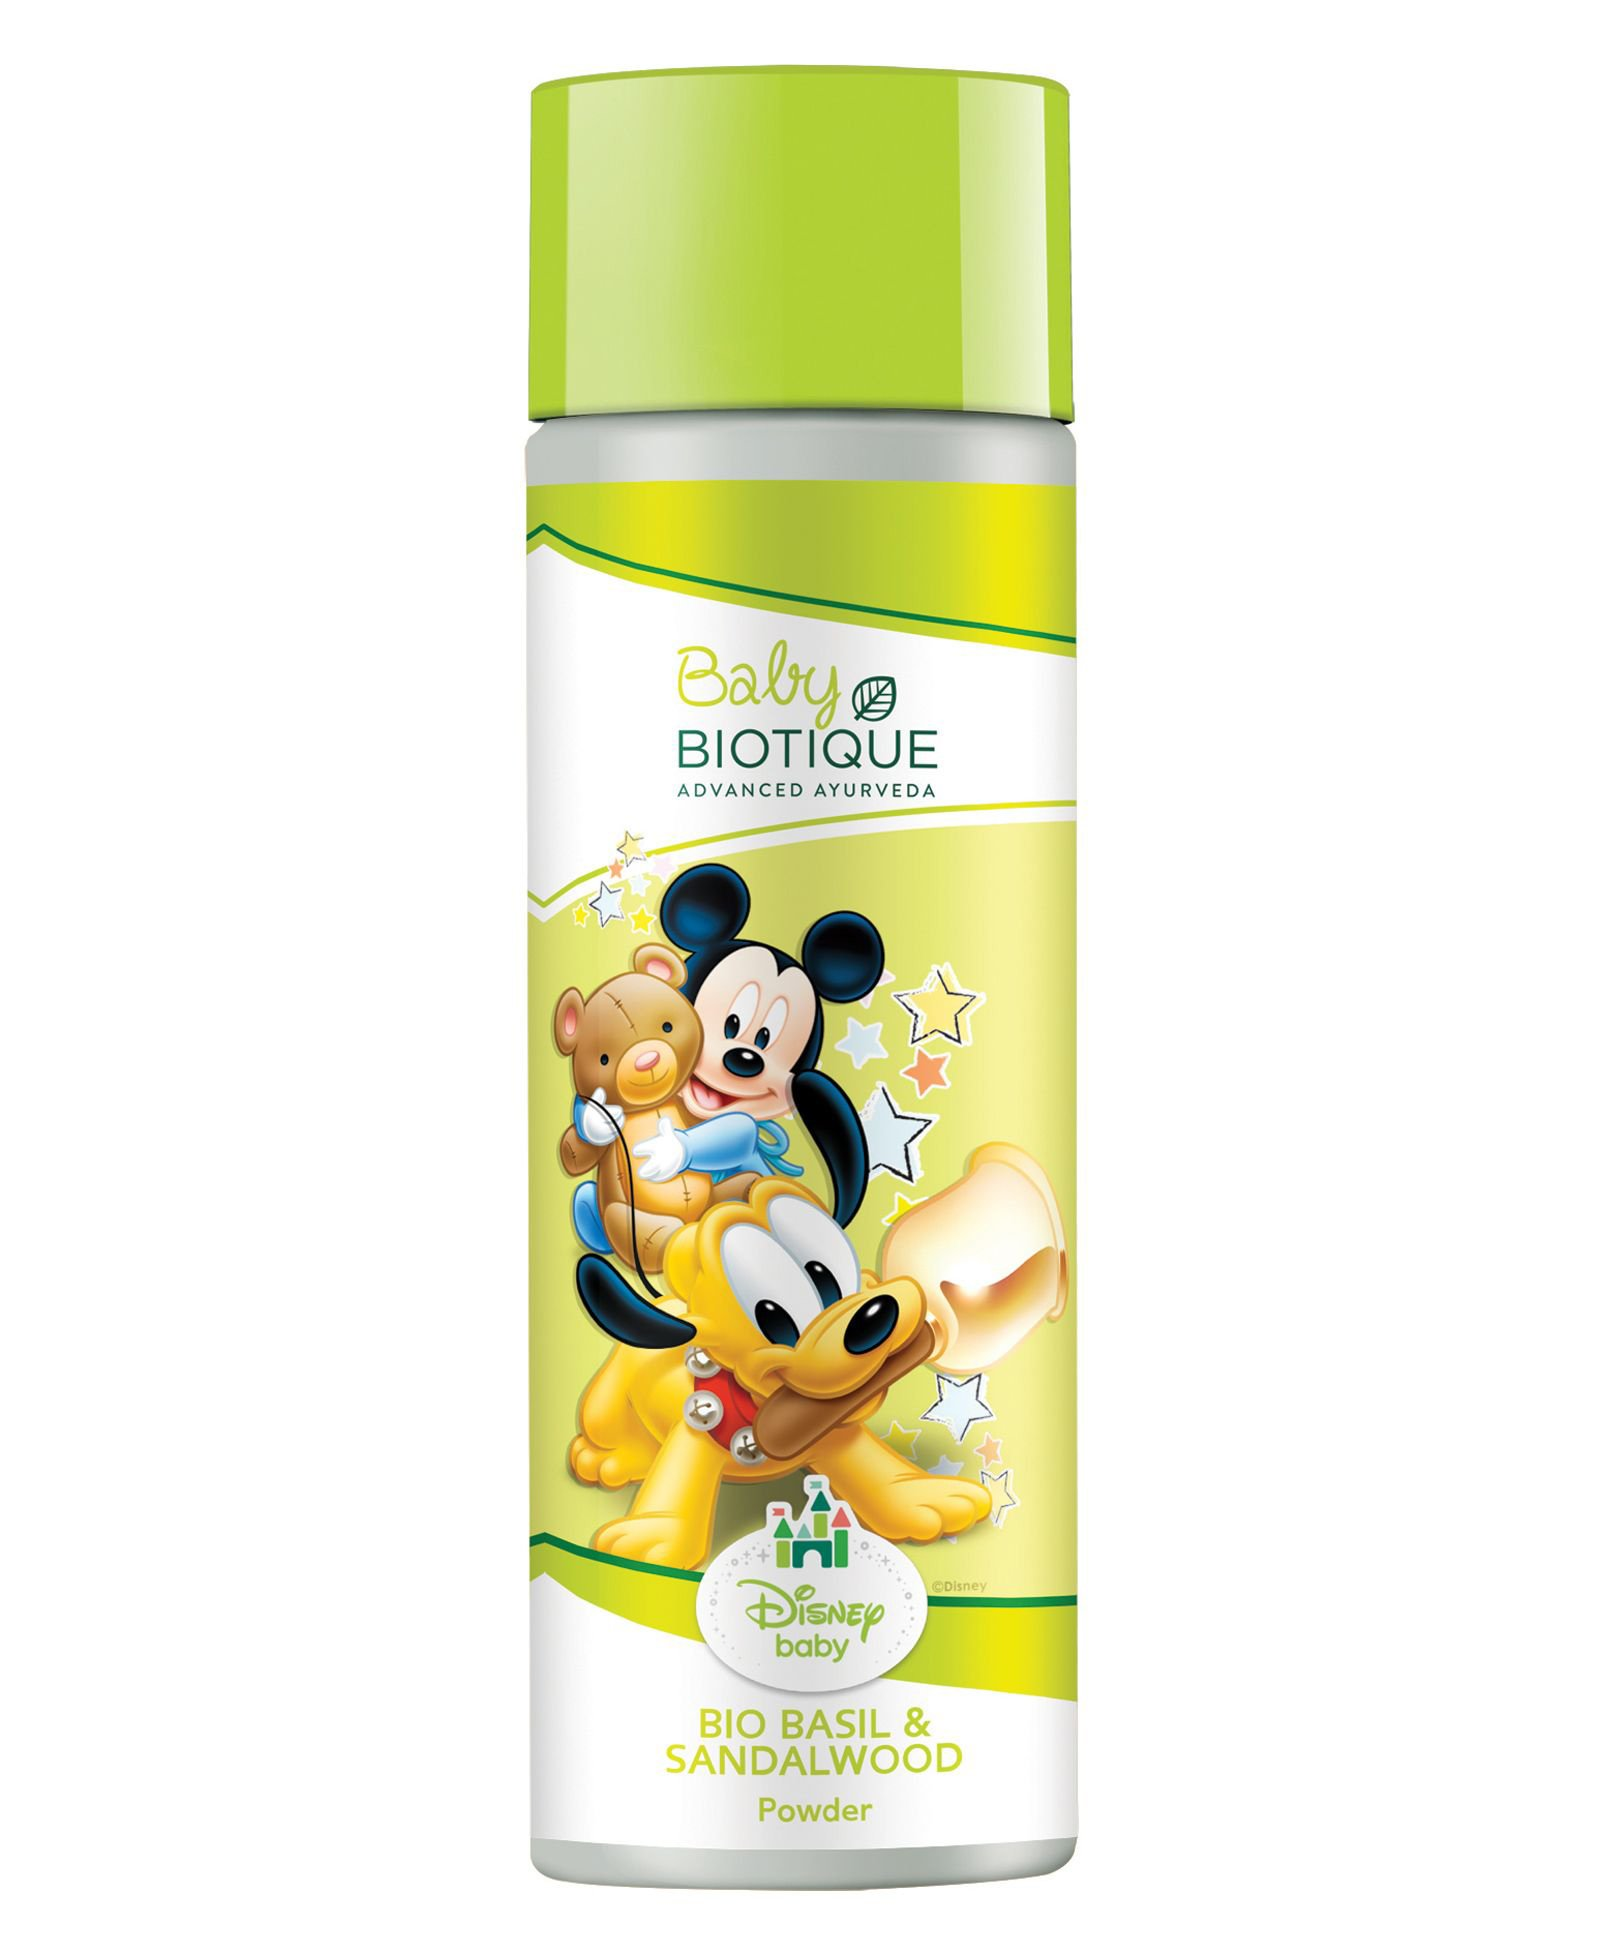 Buy Baby Biotique Kids Products Online India Buds Everyday Organic Infant Massage Oil 100ml Mickey Mouse Friends Bio Basil Red Sandalwood Powder